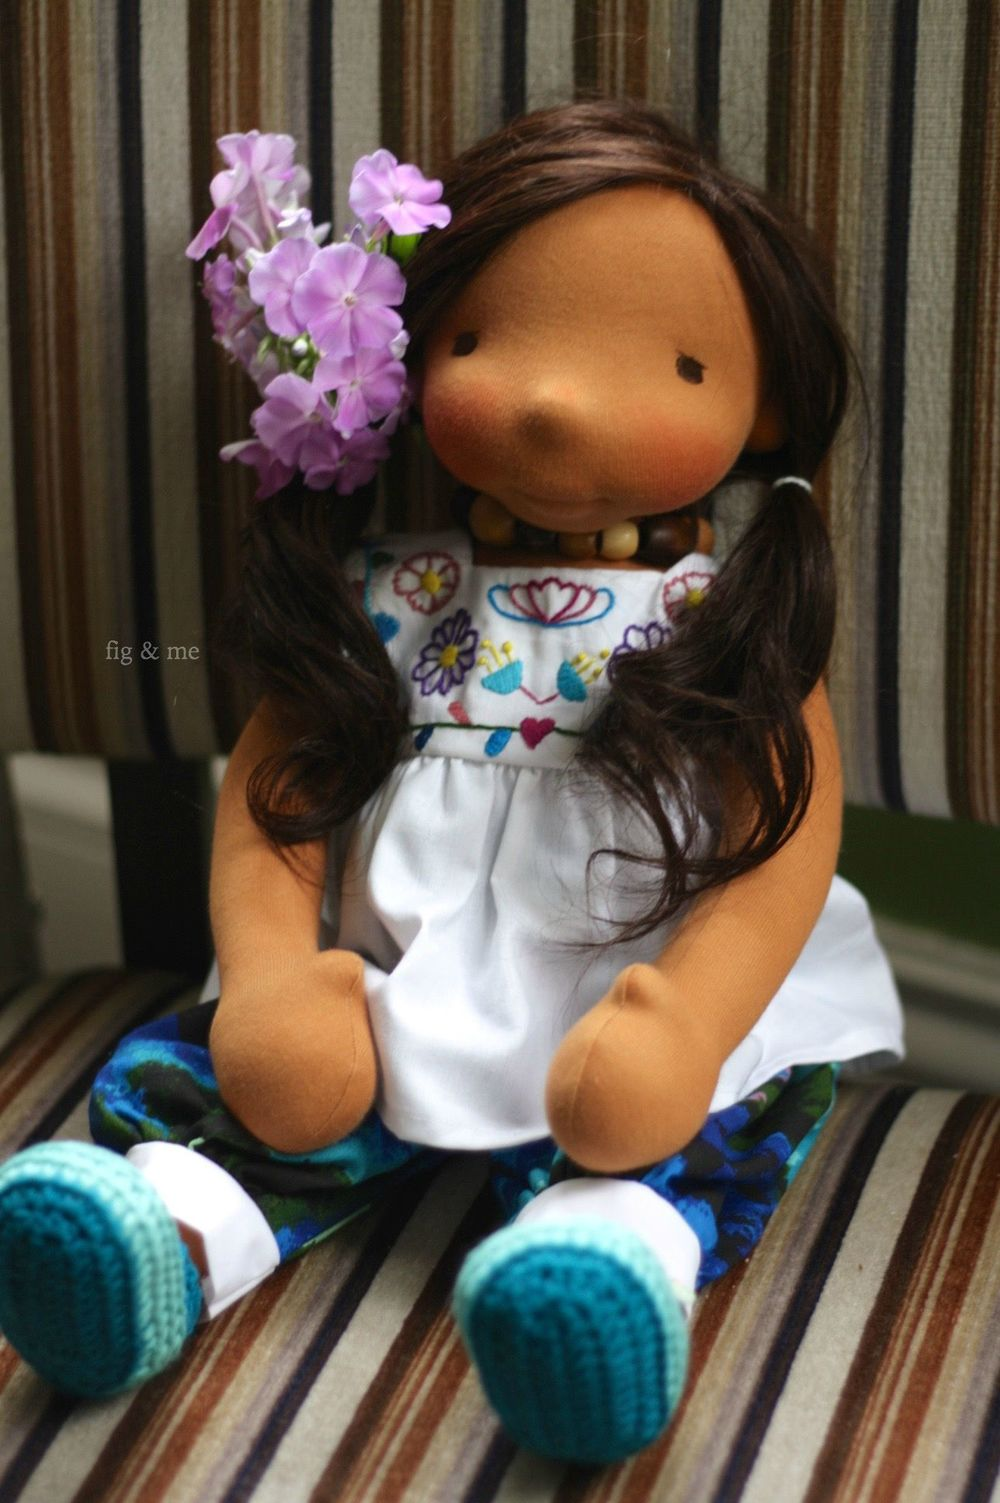 Adelita is a custom all-natural handmade doll by Fig and me.